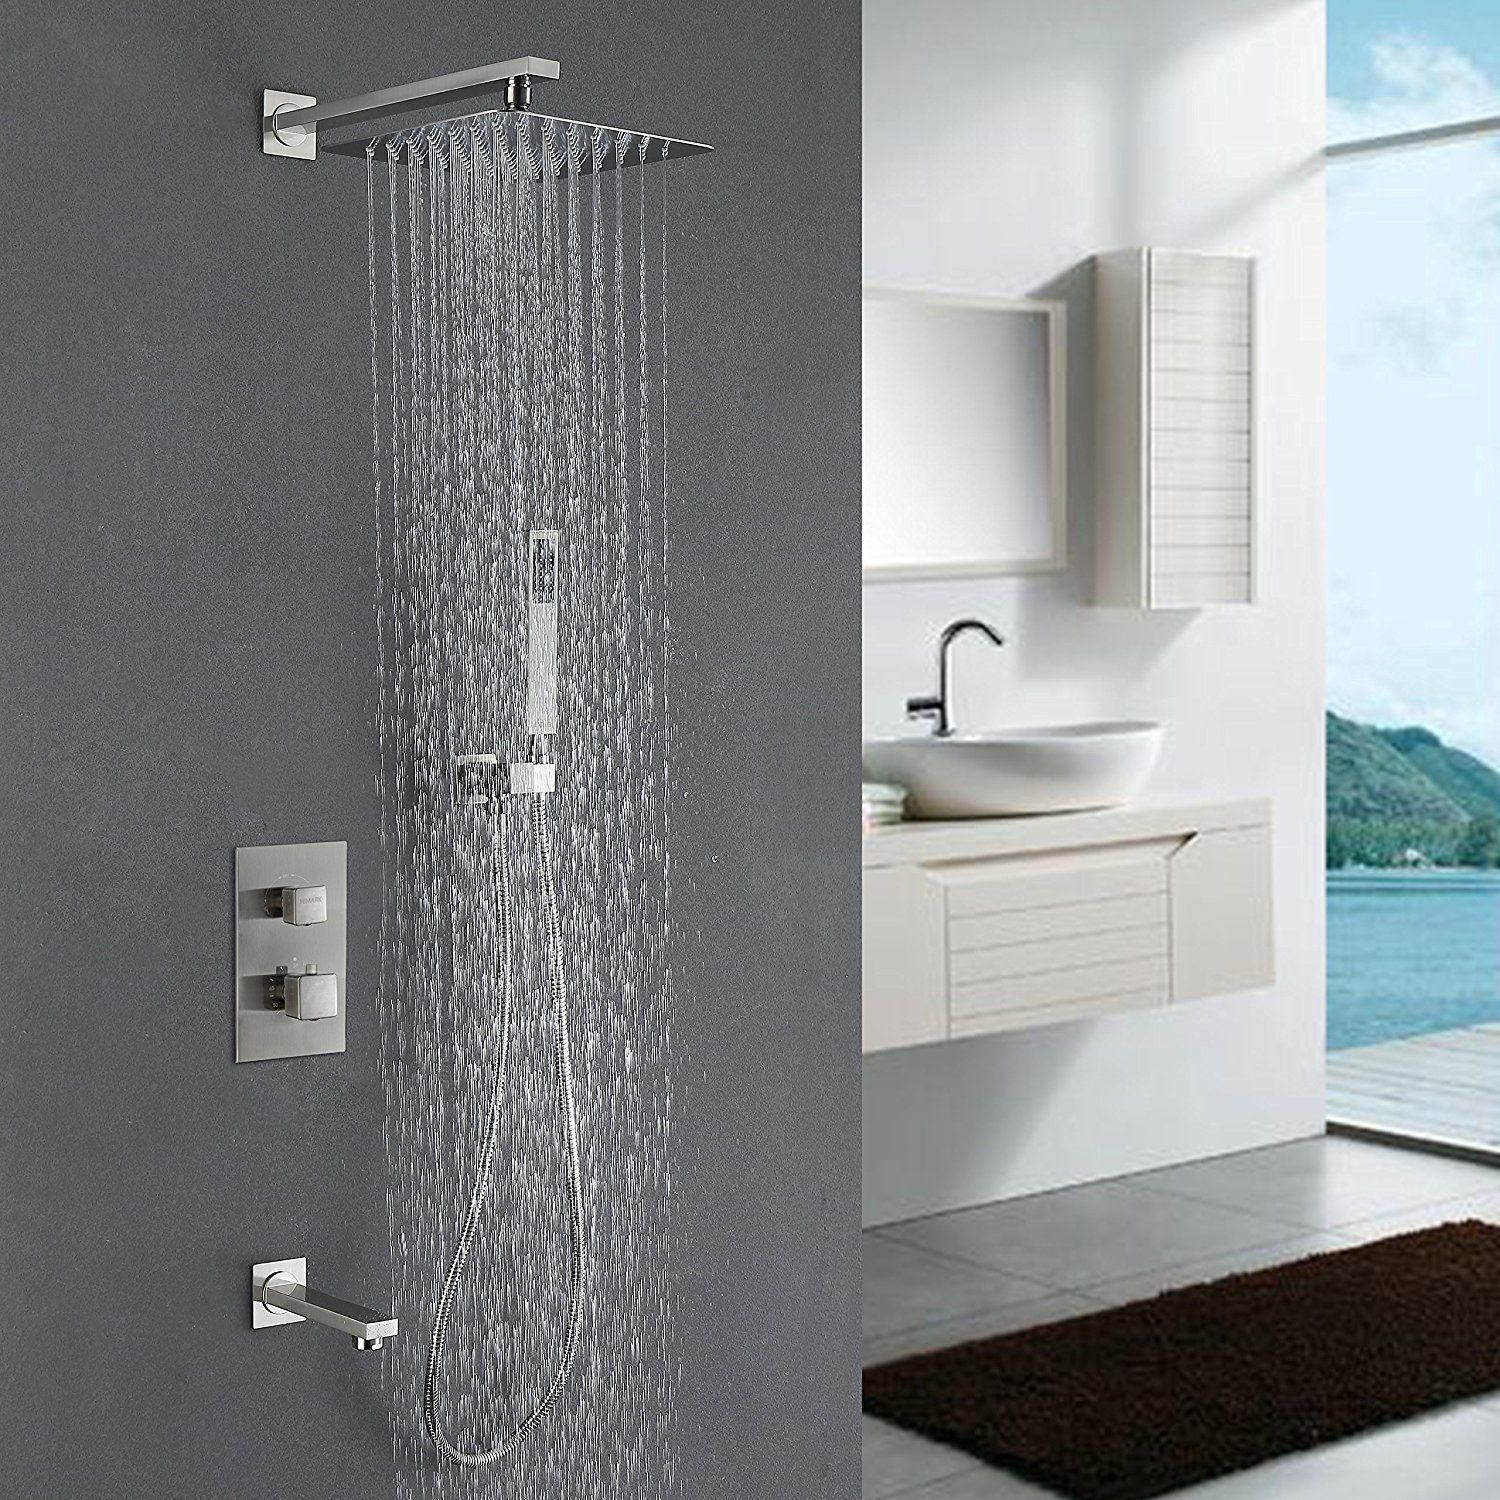 Himk Shower System Shower Faucet Set With Tub Spout 10 Inch Rainfall Combo Set Showers Ideas Of Showe Rain Shower System Shower Systems Shower Faucet Sets